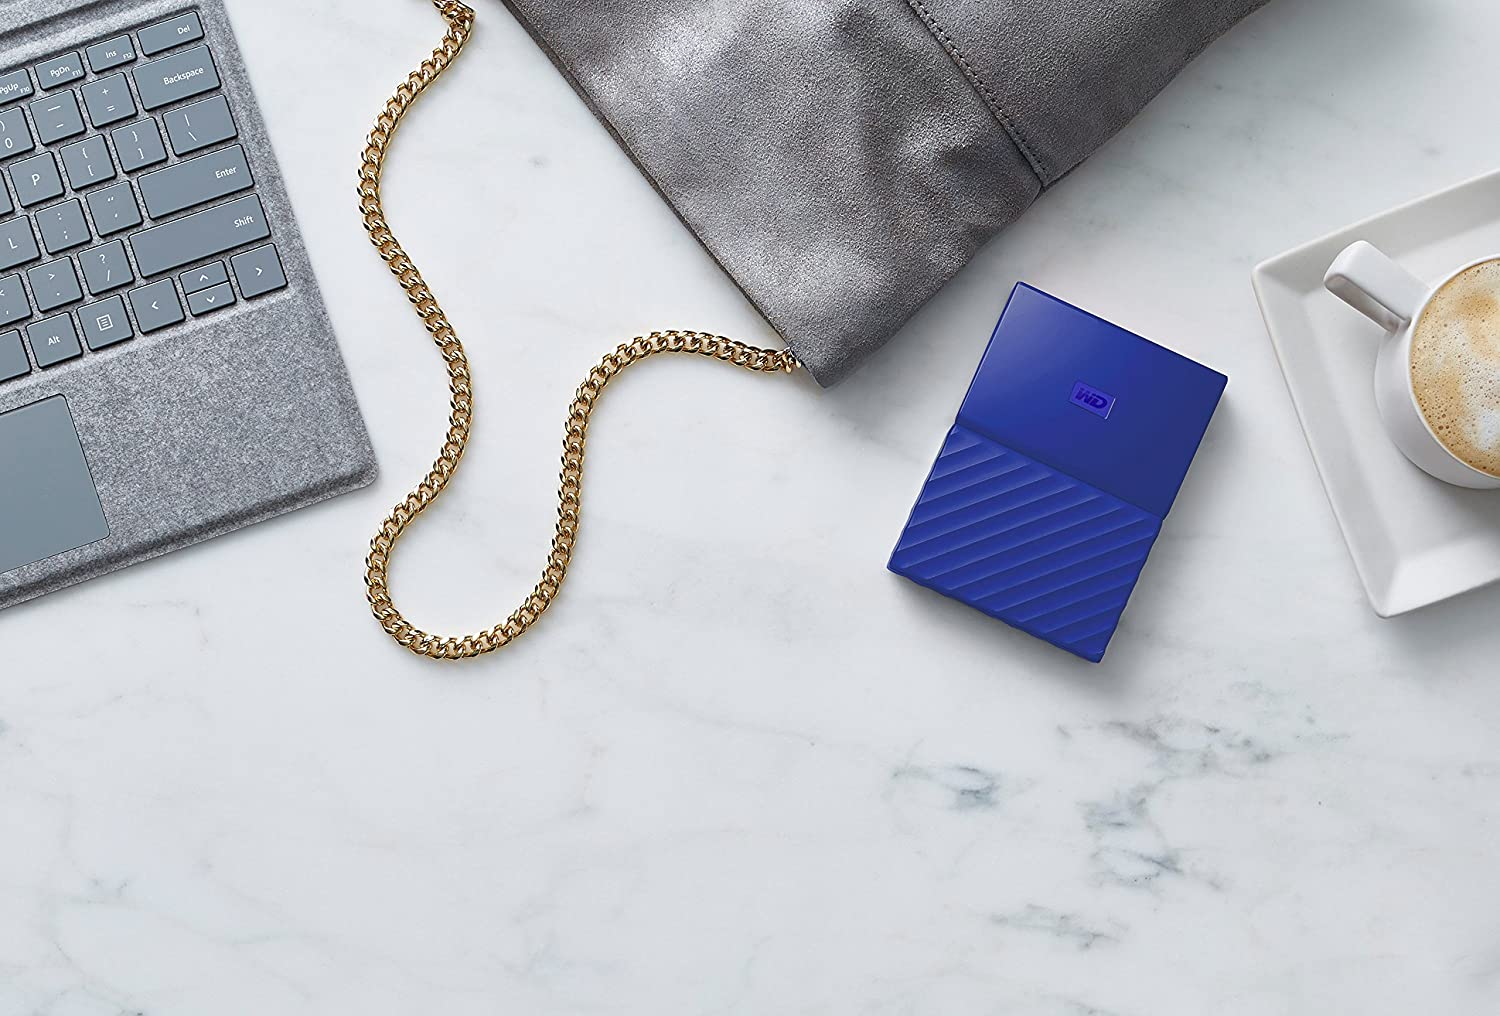 WD My Passport 4 TB Portable Hard Drive for PC Blue Xbox One and PlayStation 4